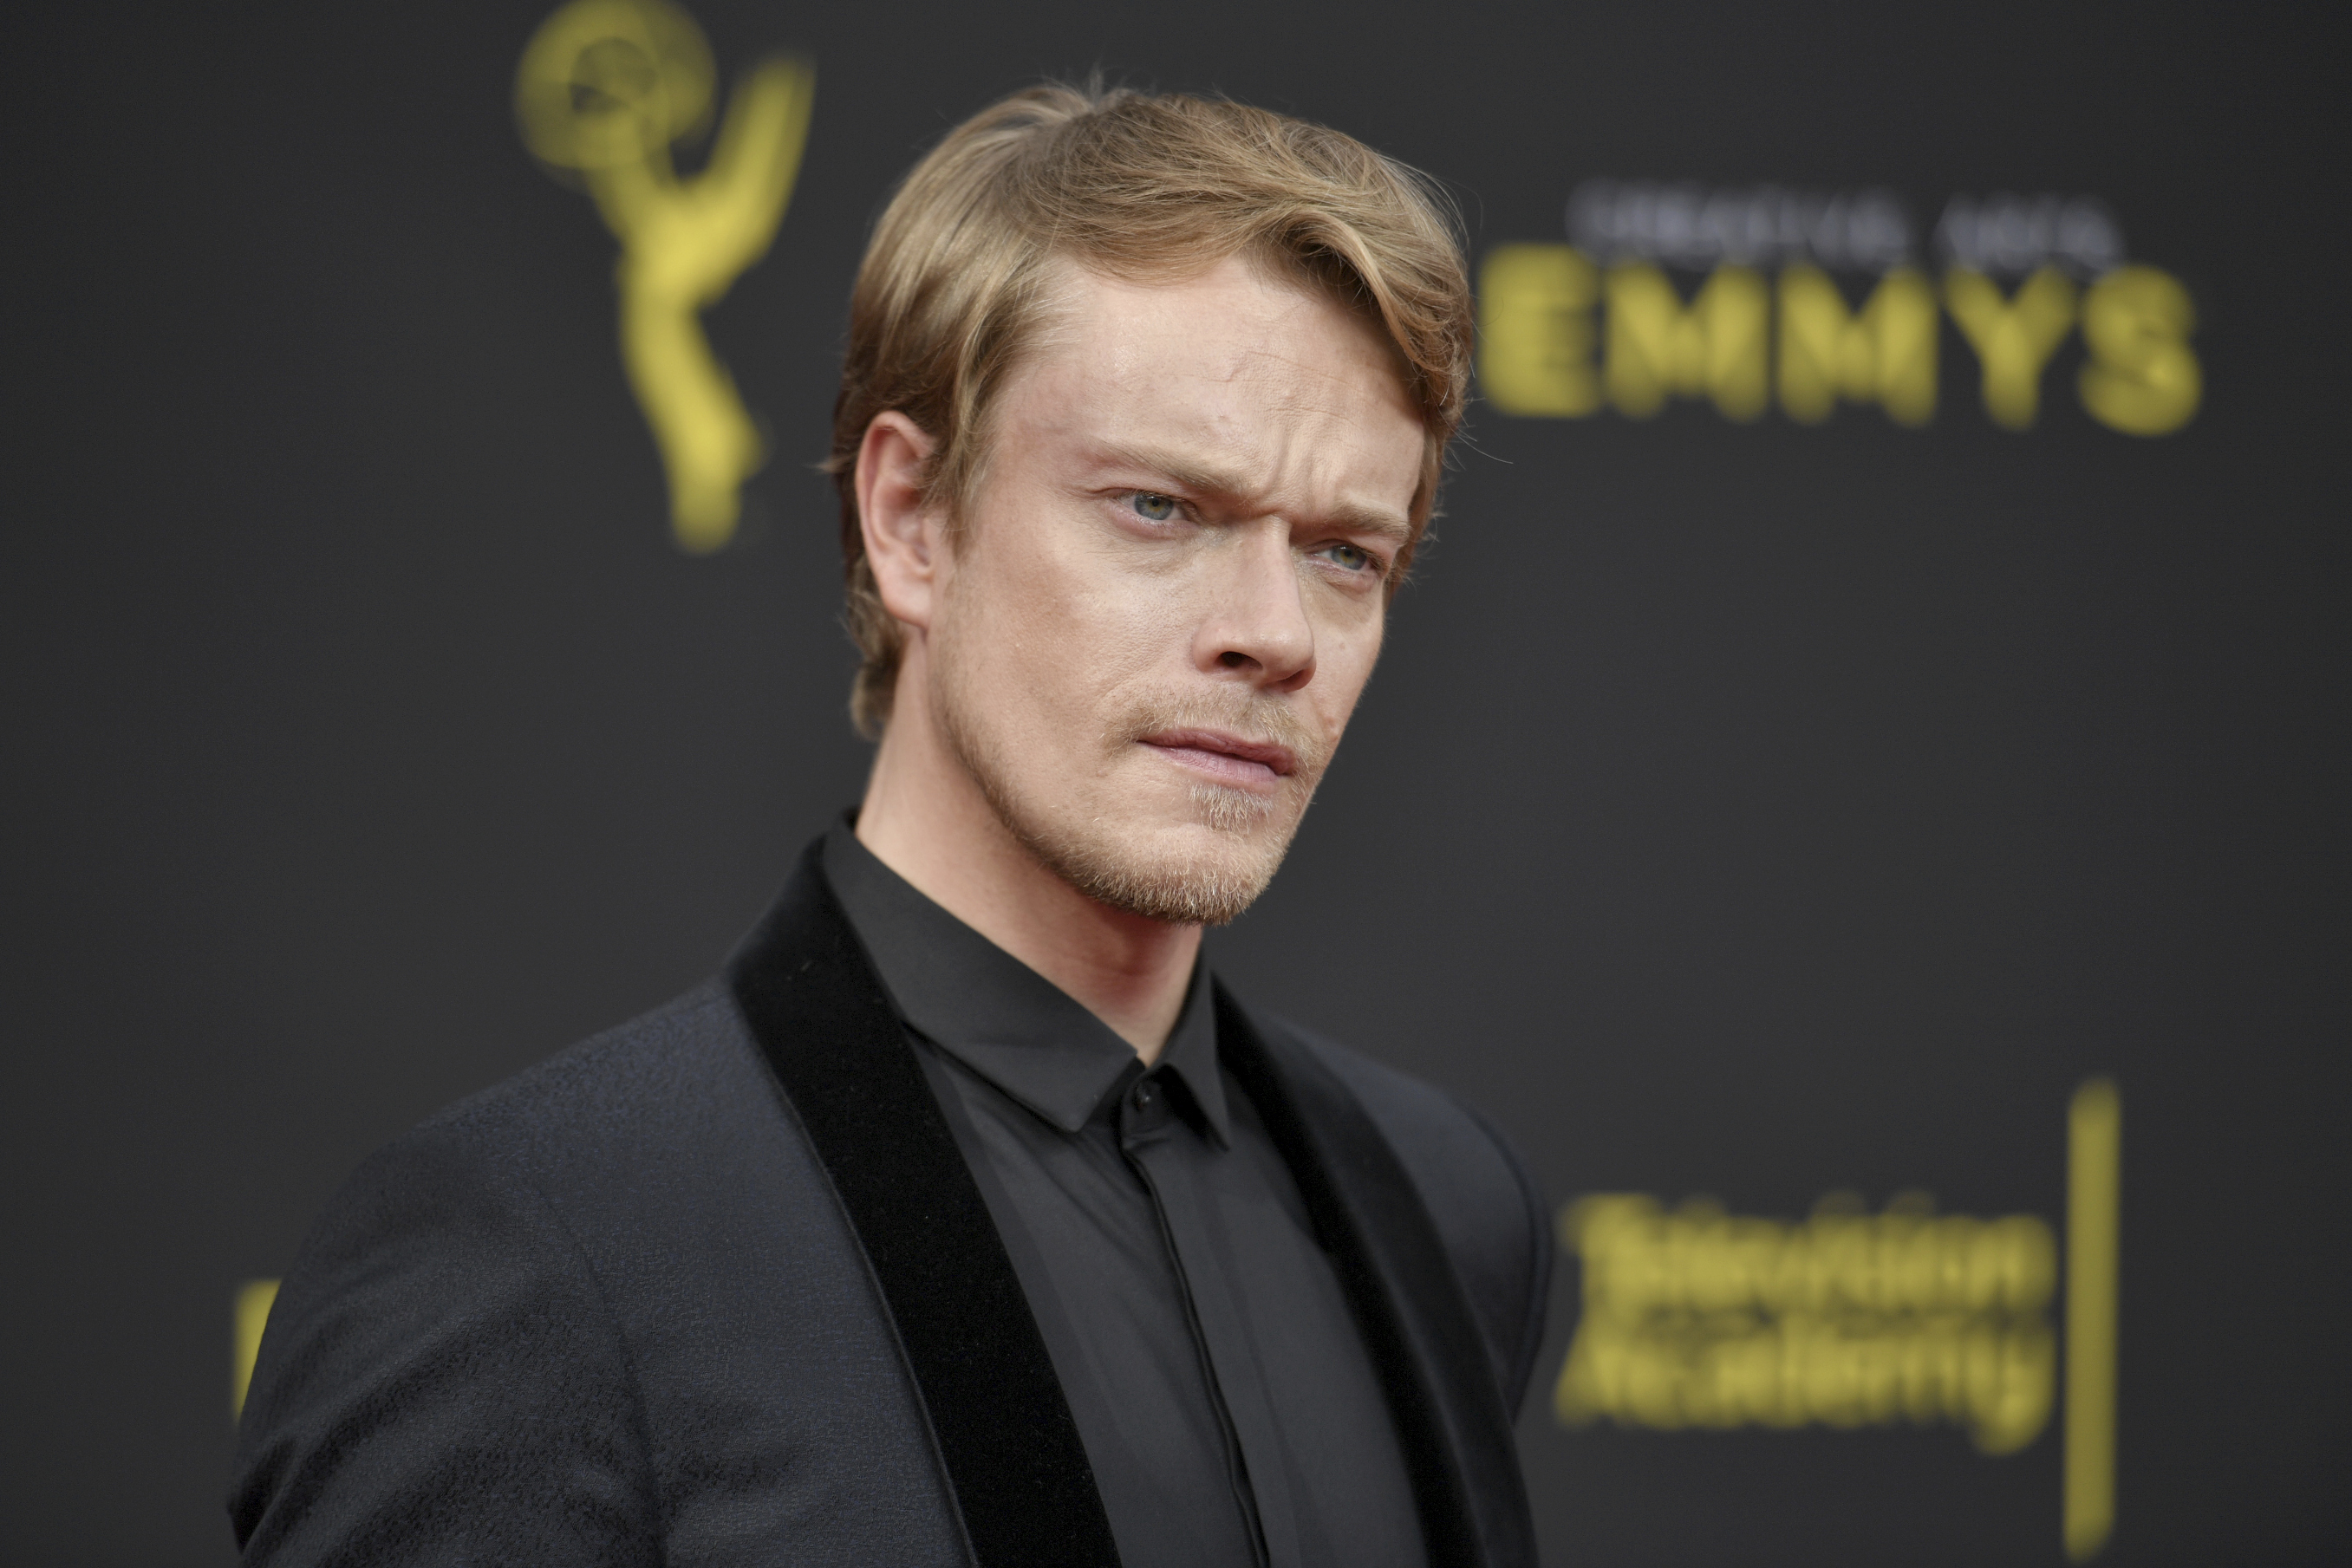 Alfie Allen arrives at night two of the Creative Arts Emmy Awards on Sunday, Sept. 15, 2019, at the Microsoft Theater in Los Angeles. (Photo by Richard Shotwell/Invision/AP)